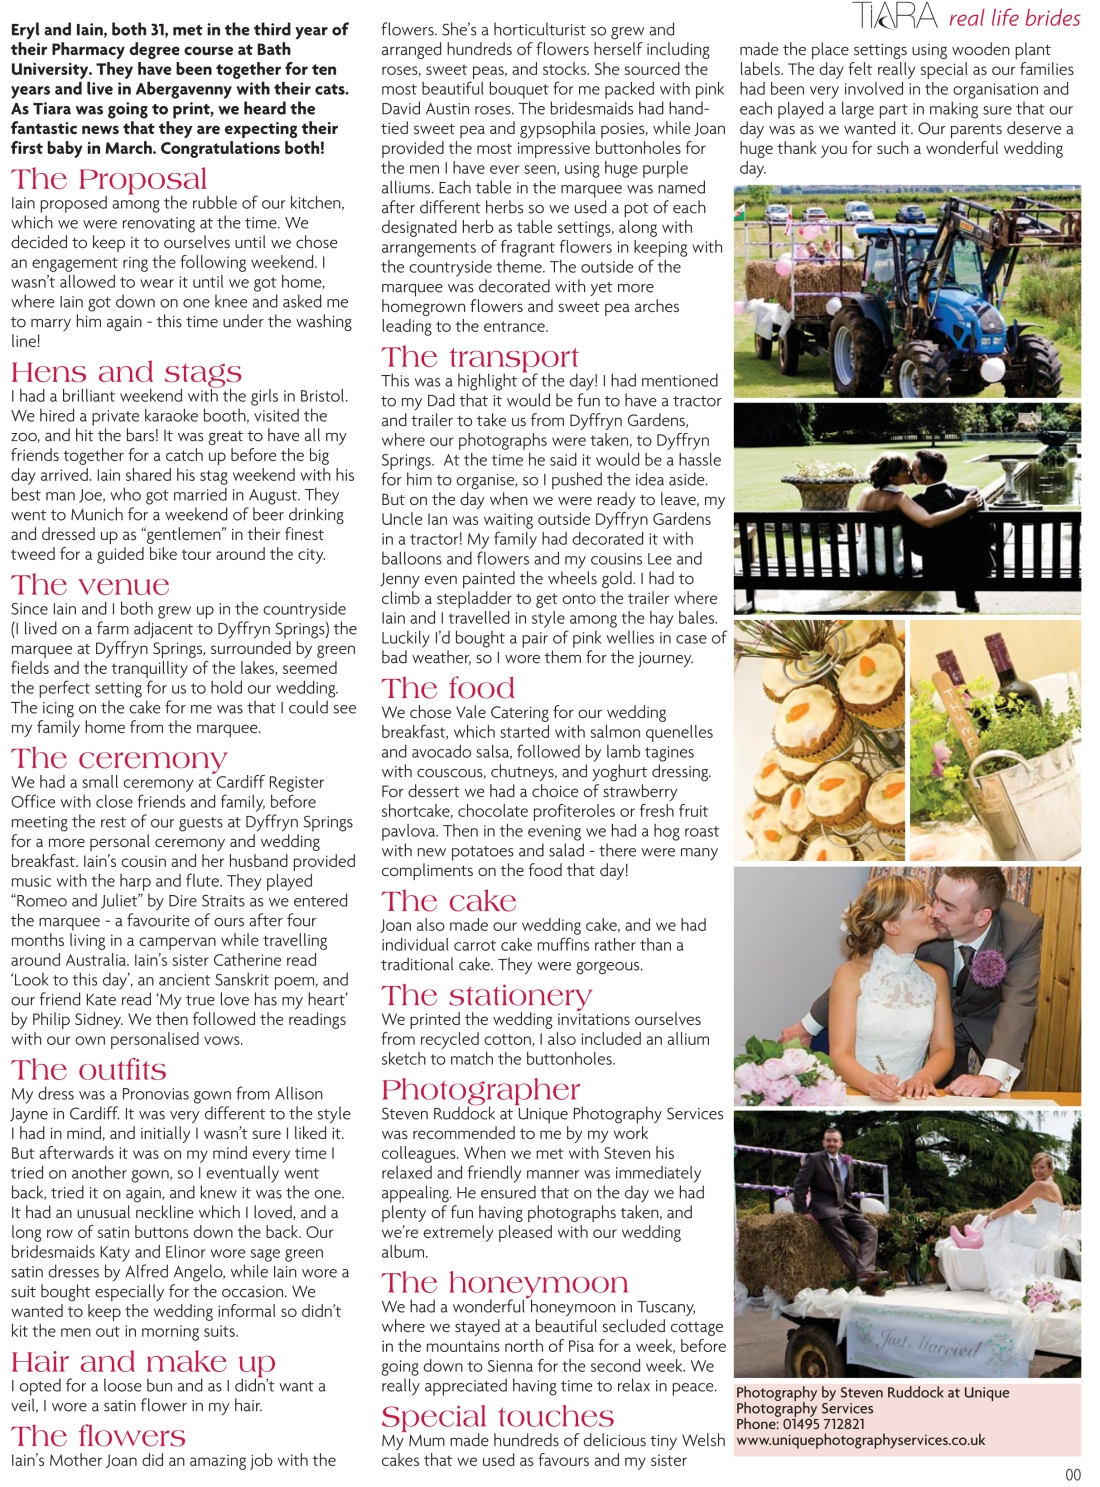 Real life brides feature, Eryl and Iain, Tiara magazine Spring 2010 issue-page 2-Amy Lewis